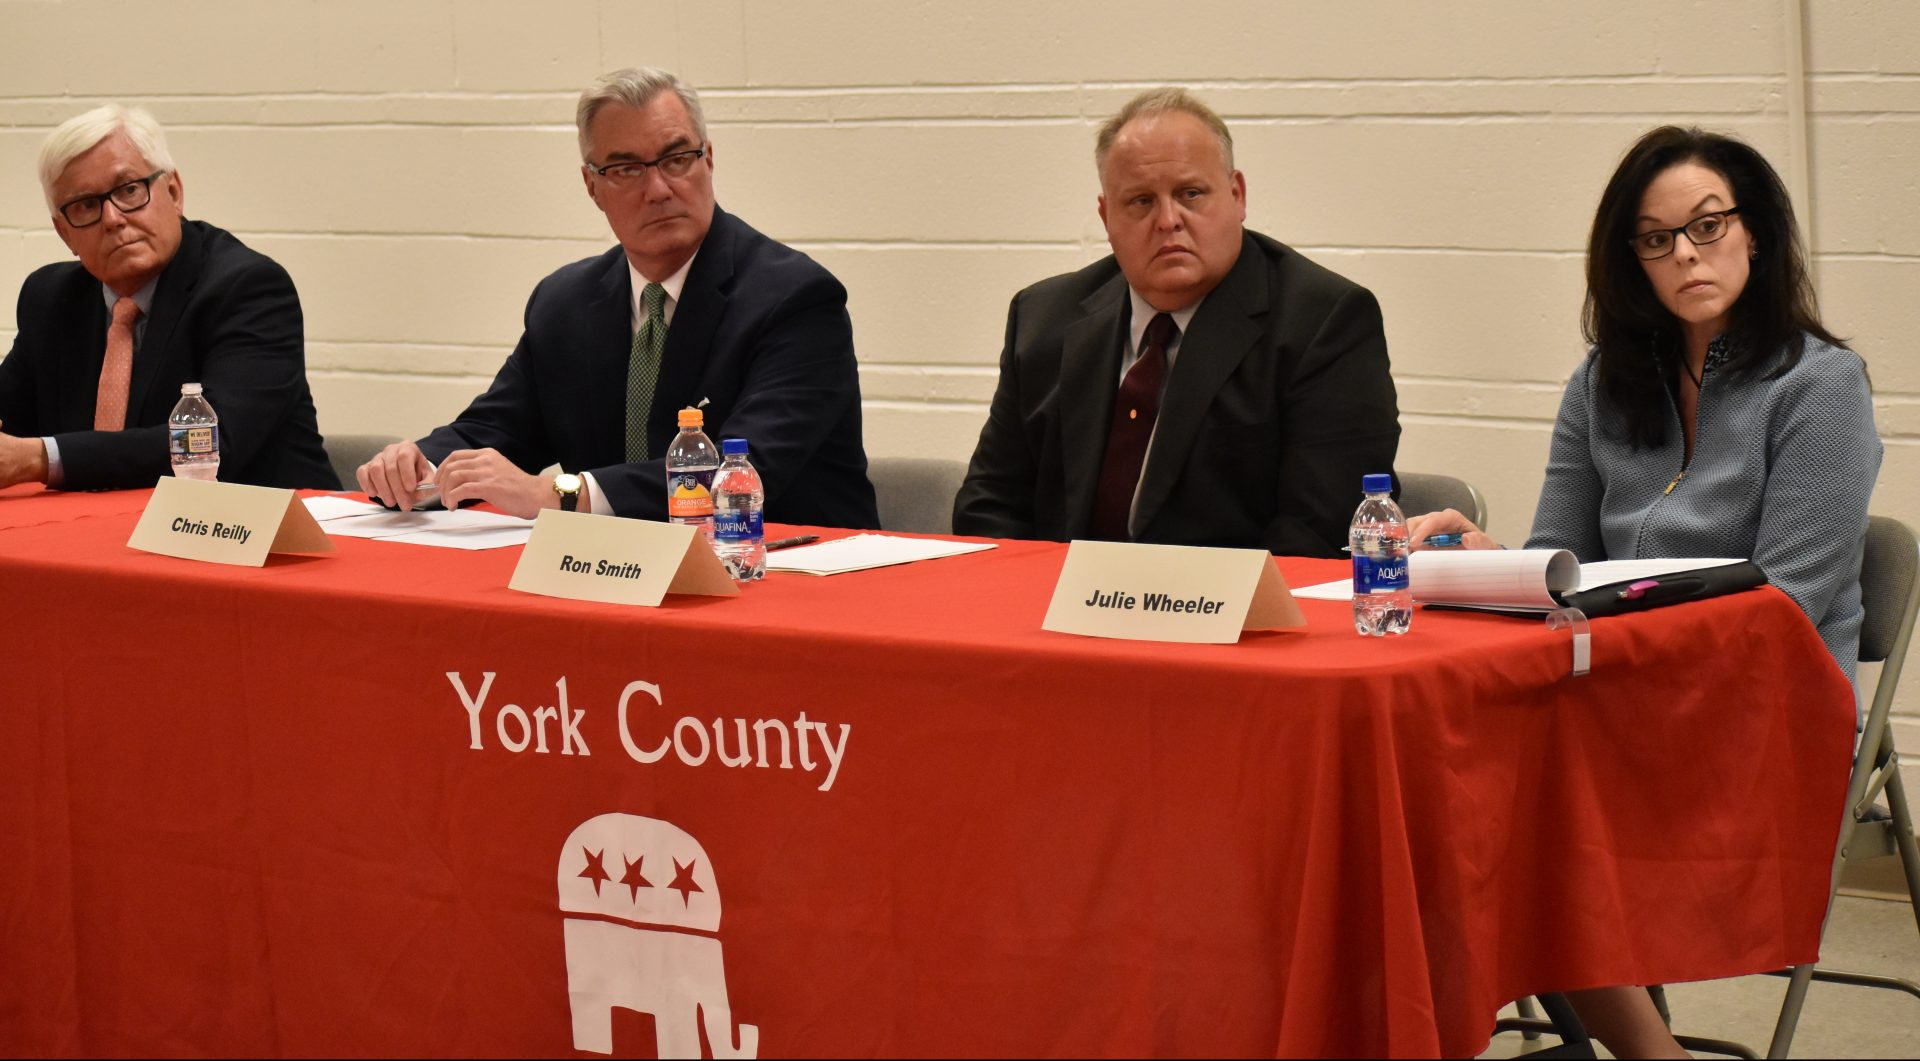 Four Republican candidates for York County commissioner participated in a debate on April, 29, 2019. They are, from left to right, Steve Chronister, Chris Reilly, Ron Smith and Julie Wheeler.